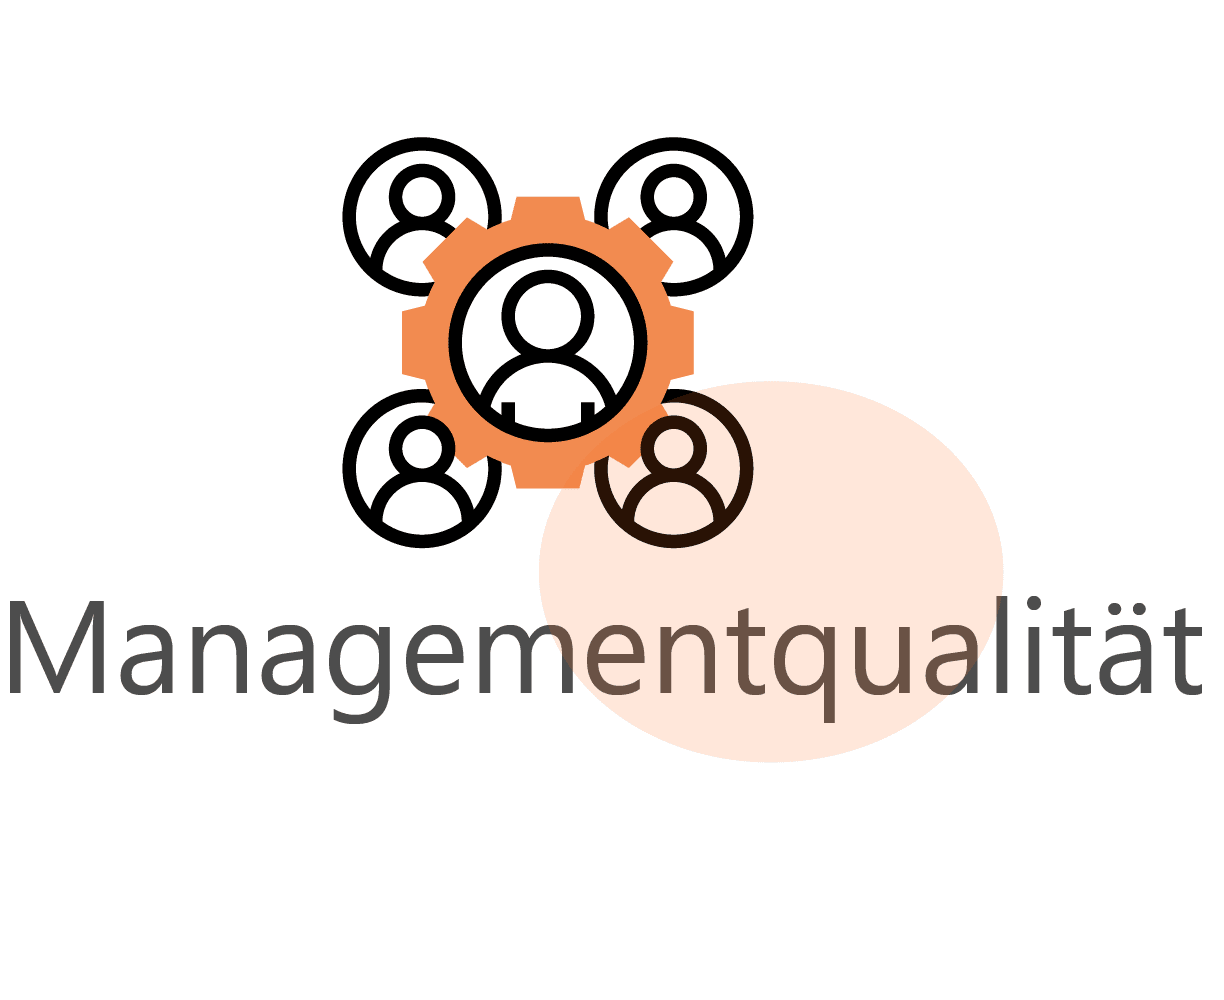 managementqualitat icon